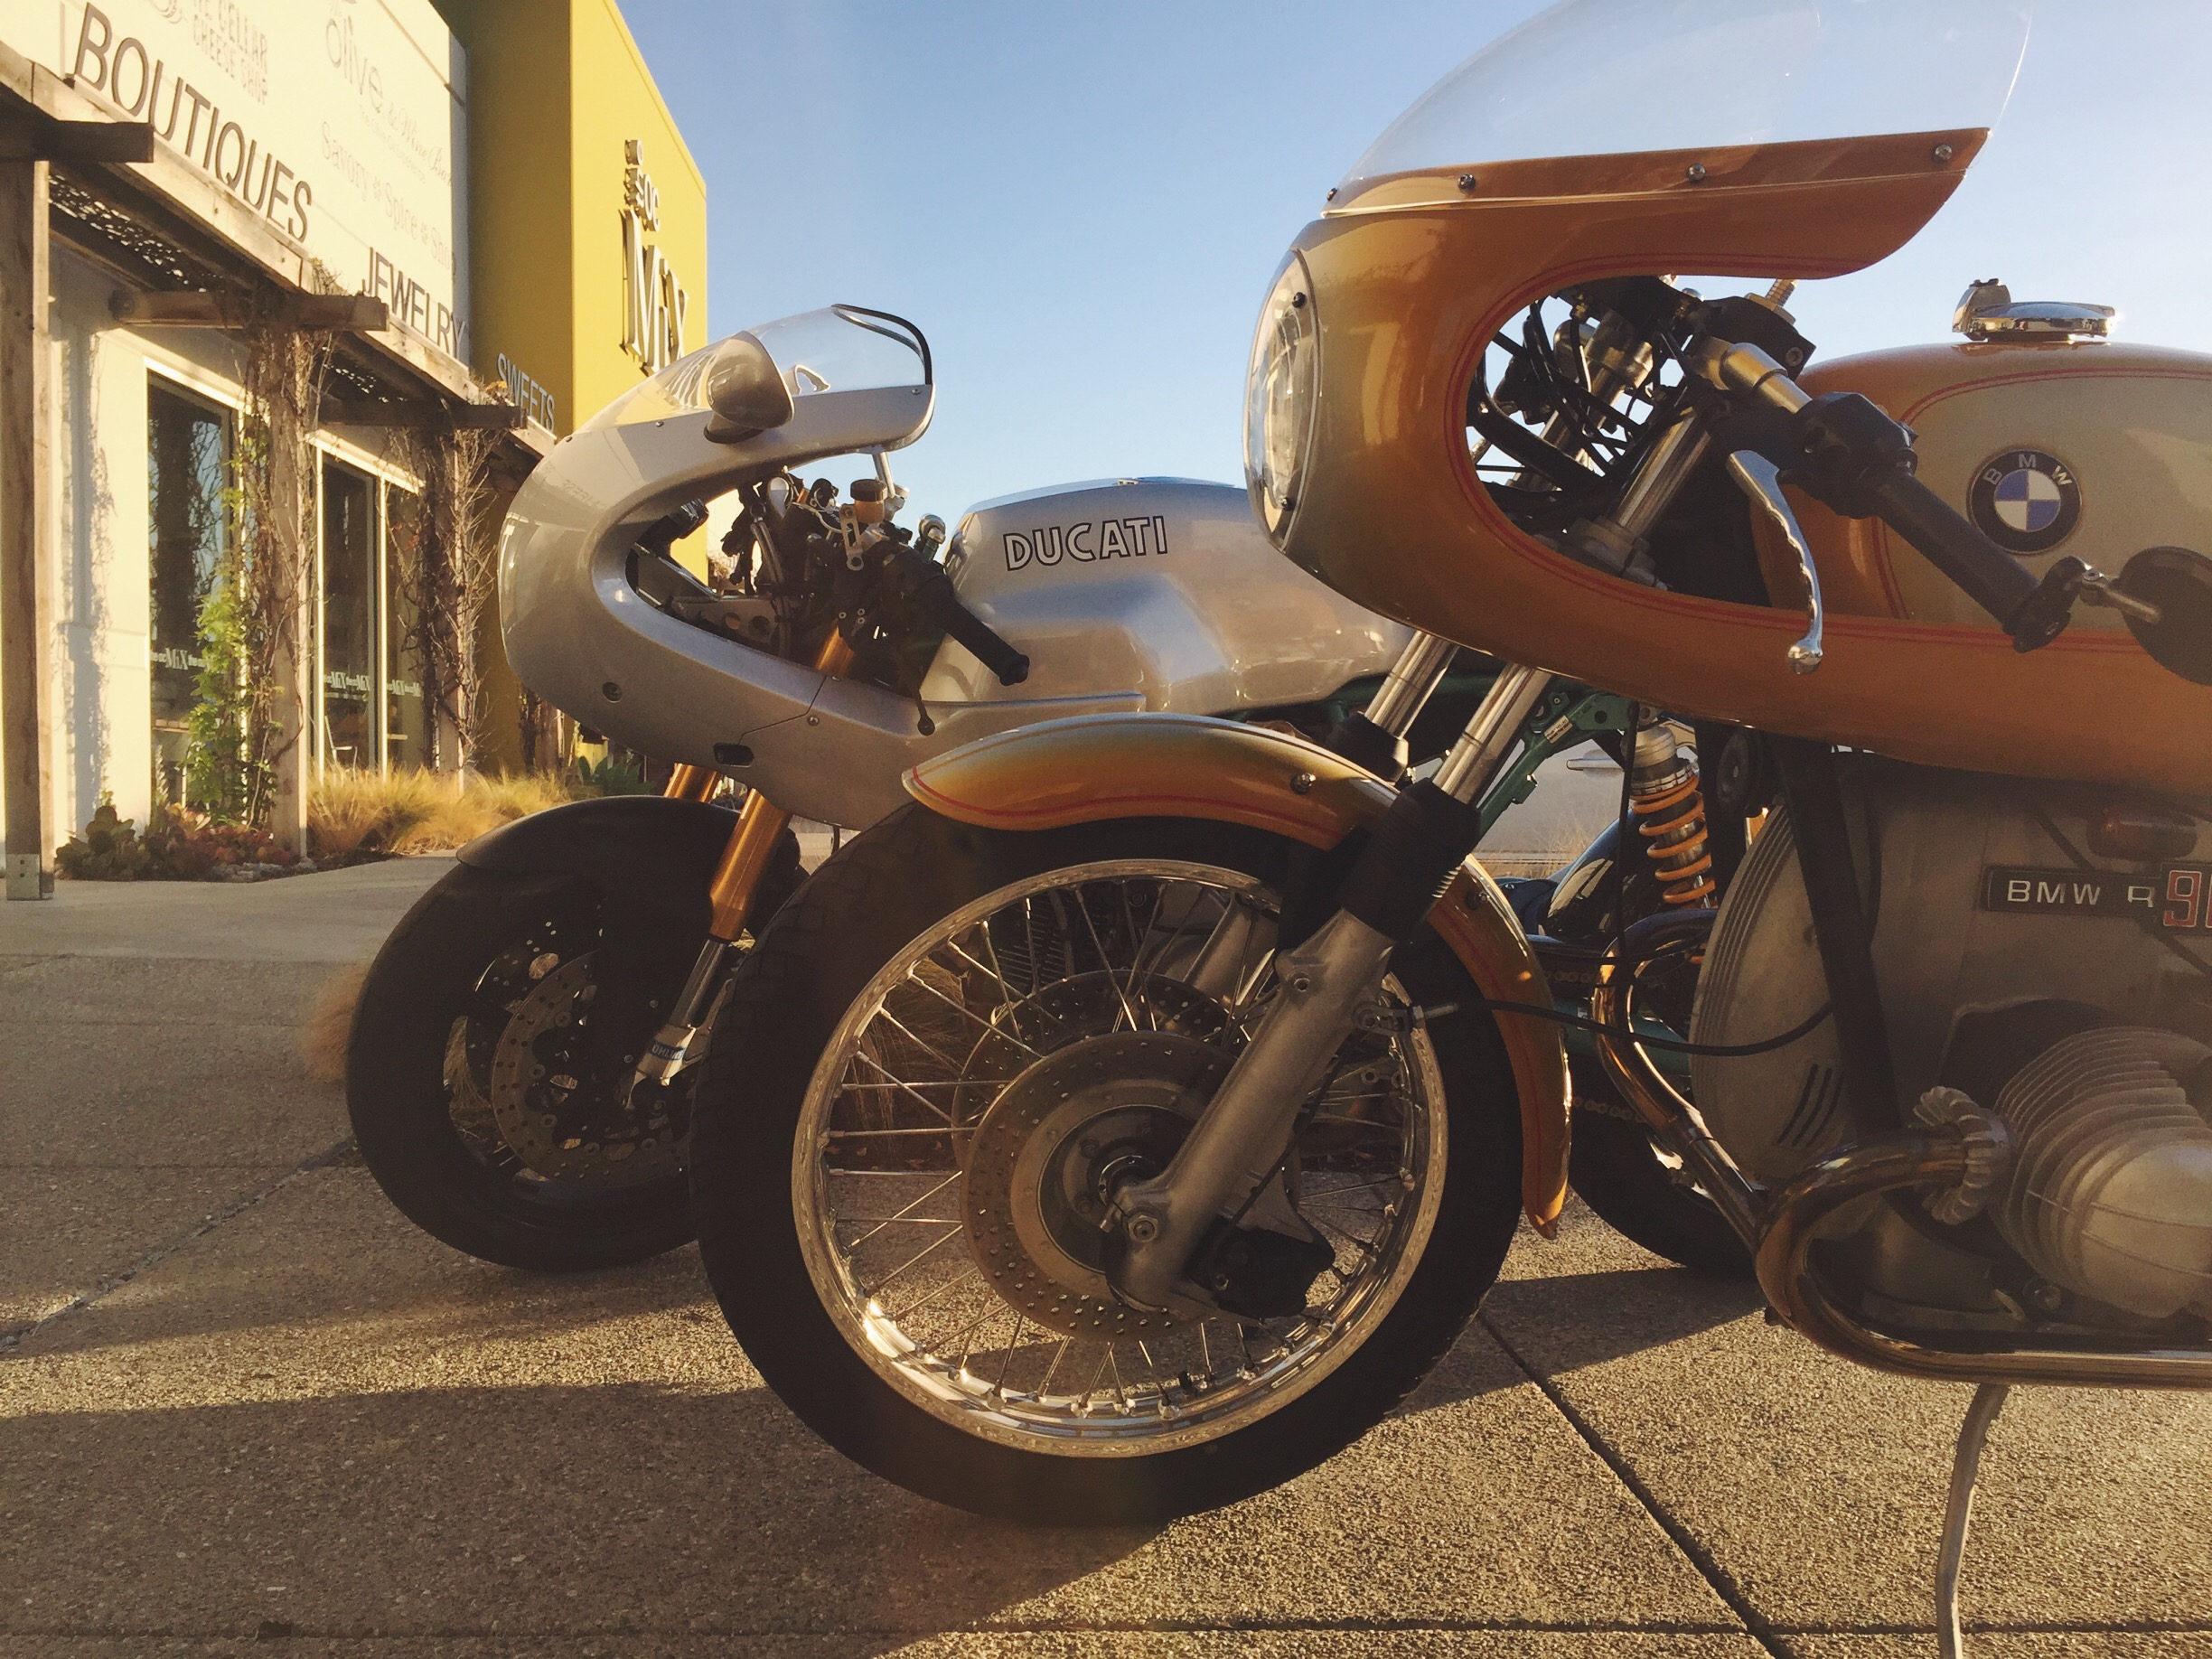 30 years apart - 2006 Ducati Paul Smart Limited Edition & 1976 BMW R90S Ritmo Sereno Traditional Custom